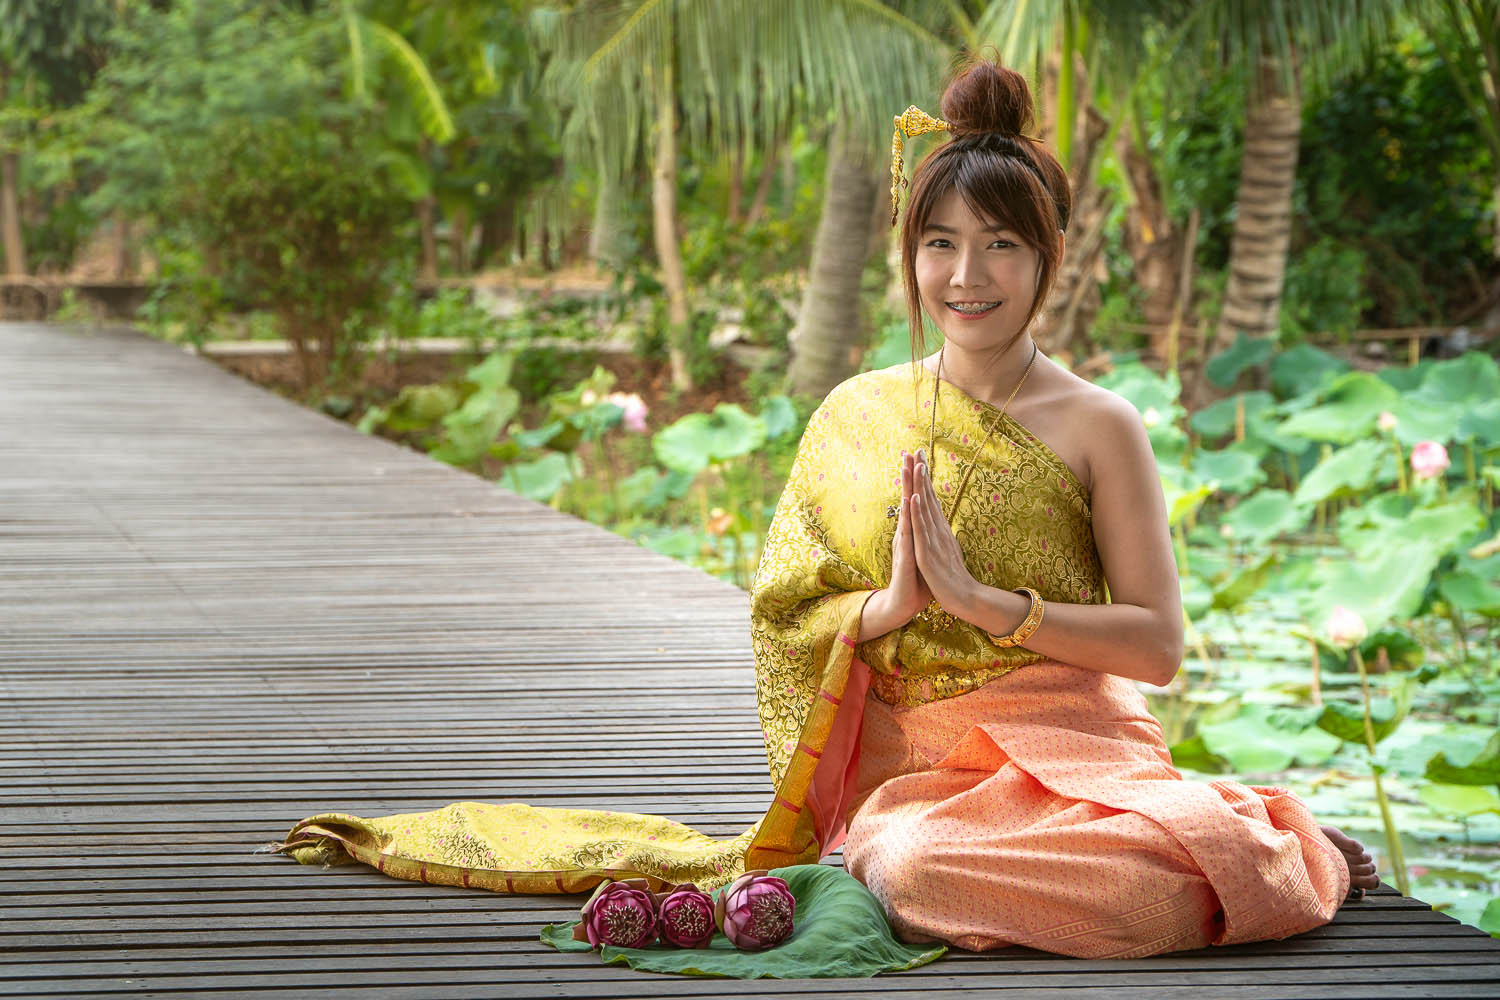 Thailand is known as the 'Land of Smiles'. Image:     Prot Tachapanit